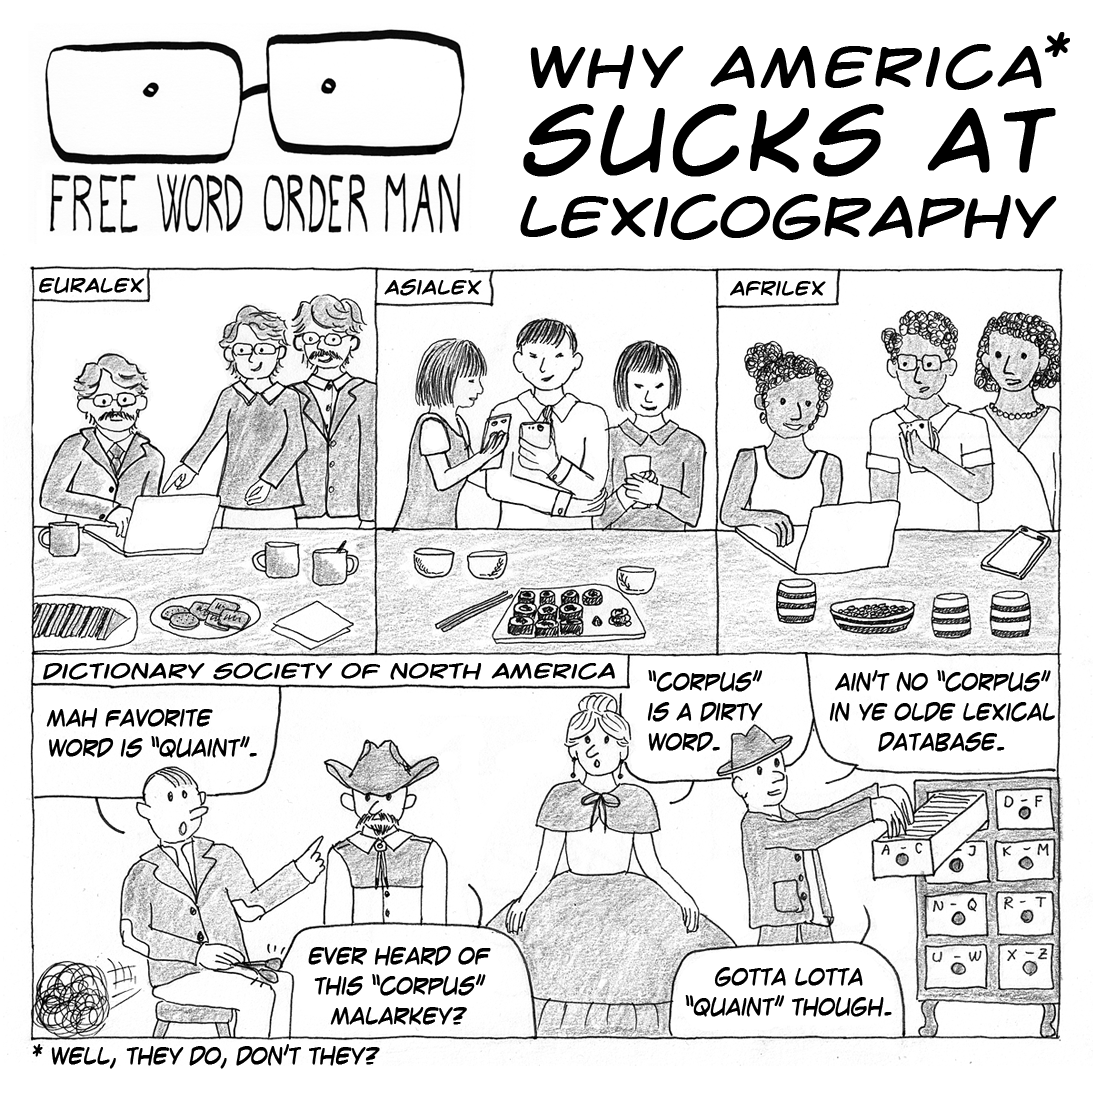 #24 Why America Sucks At Lexicography